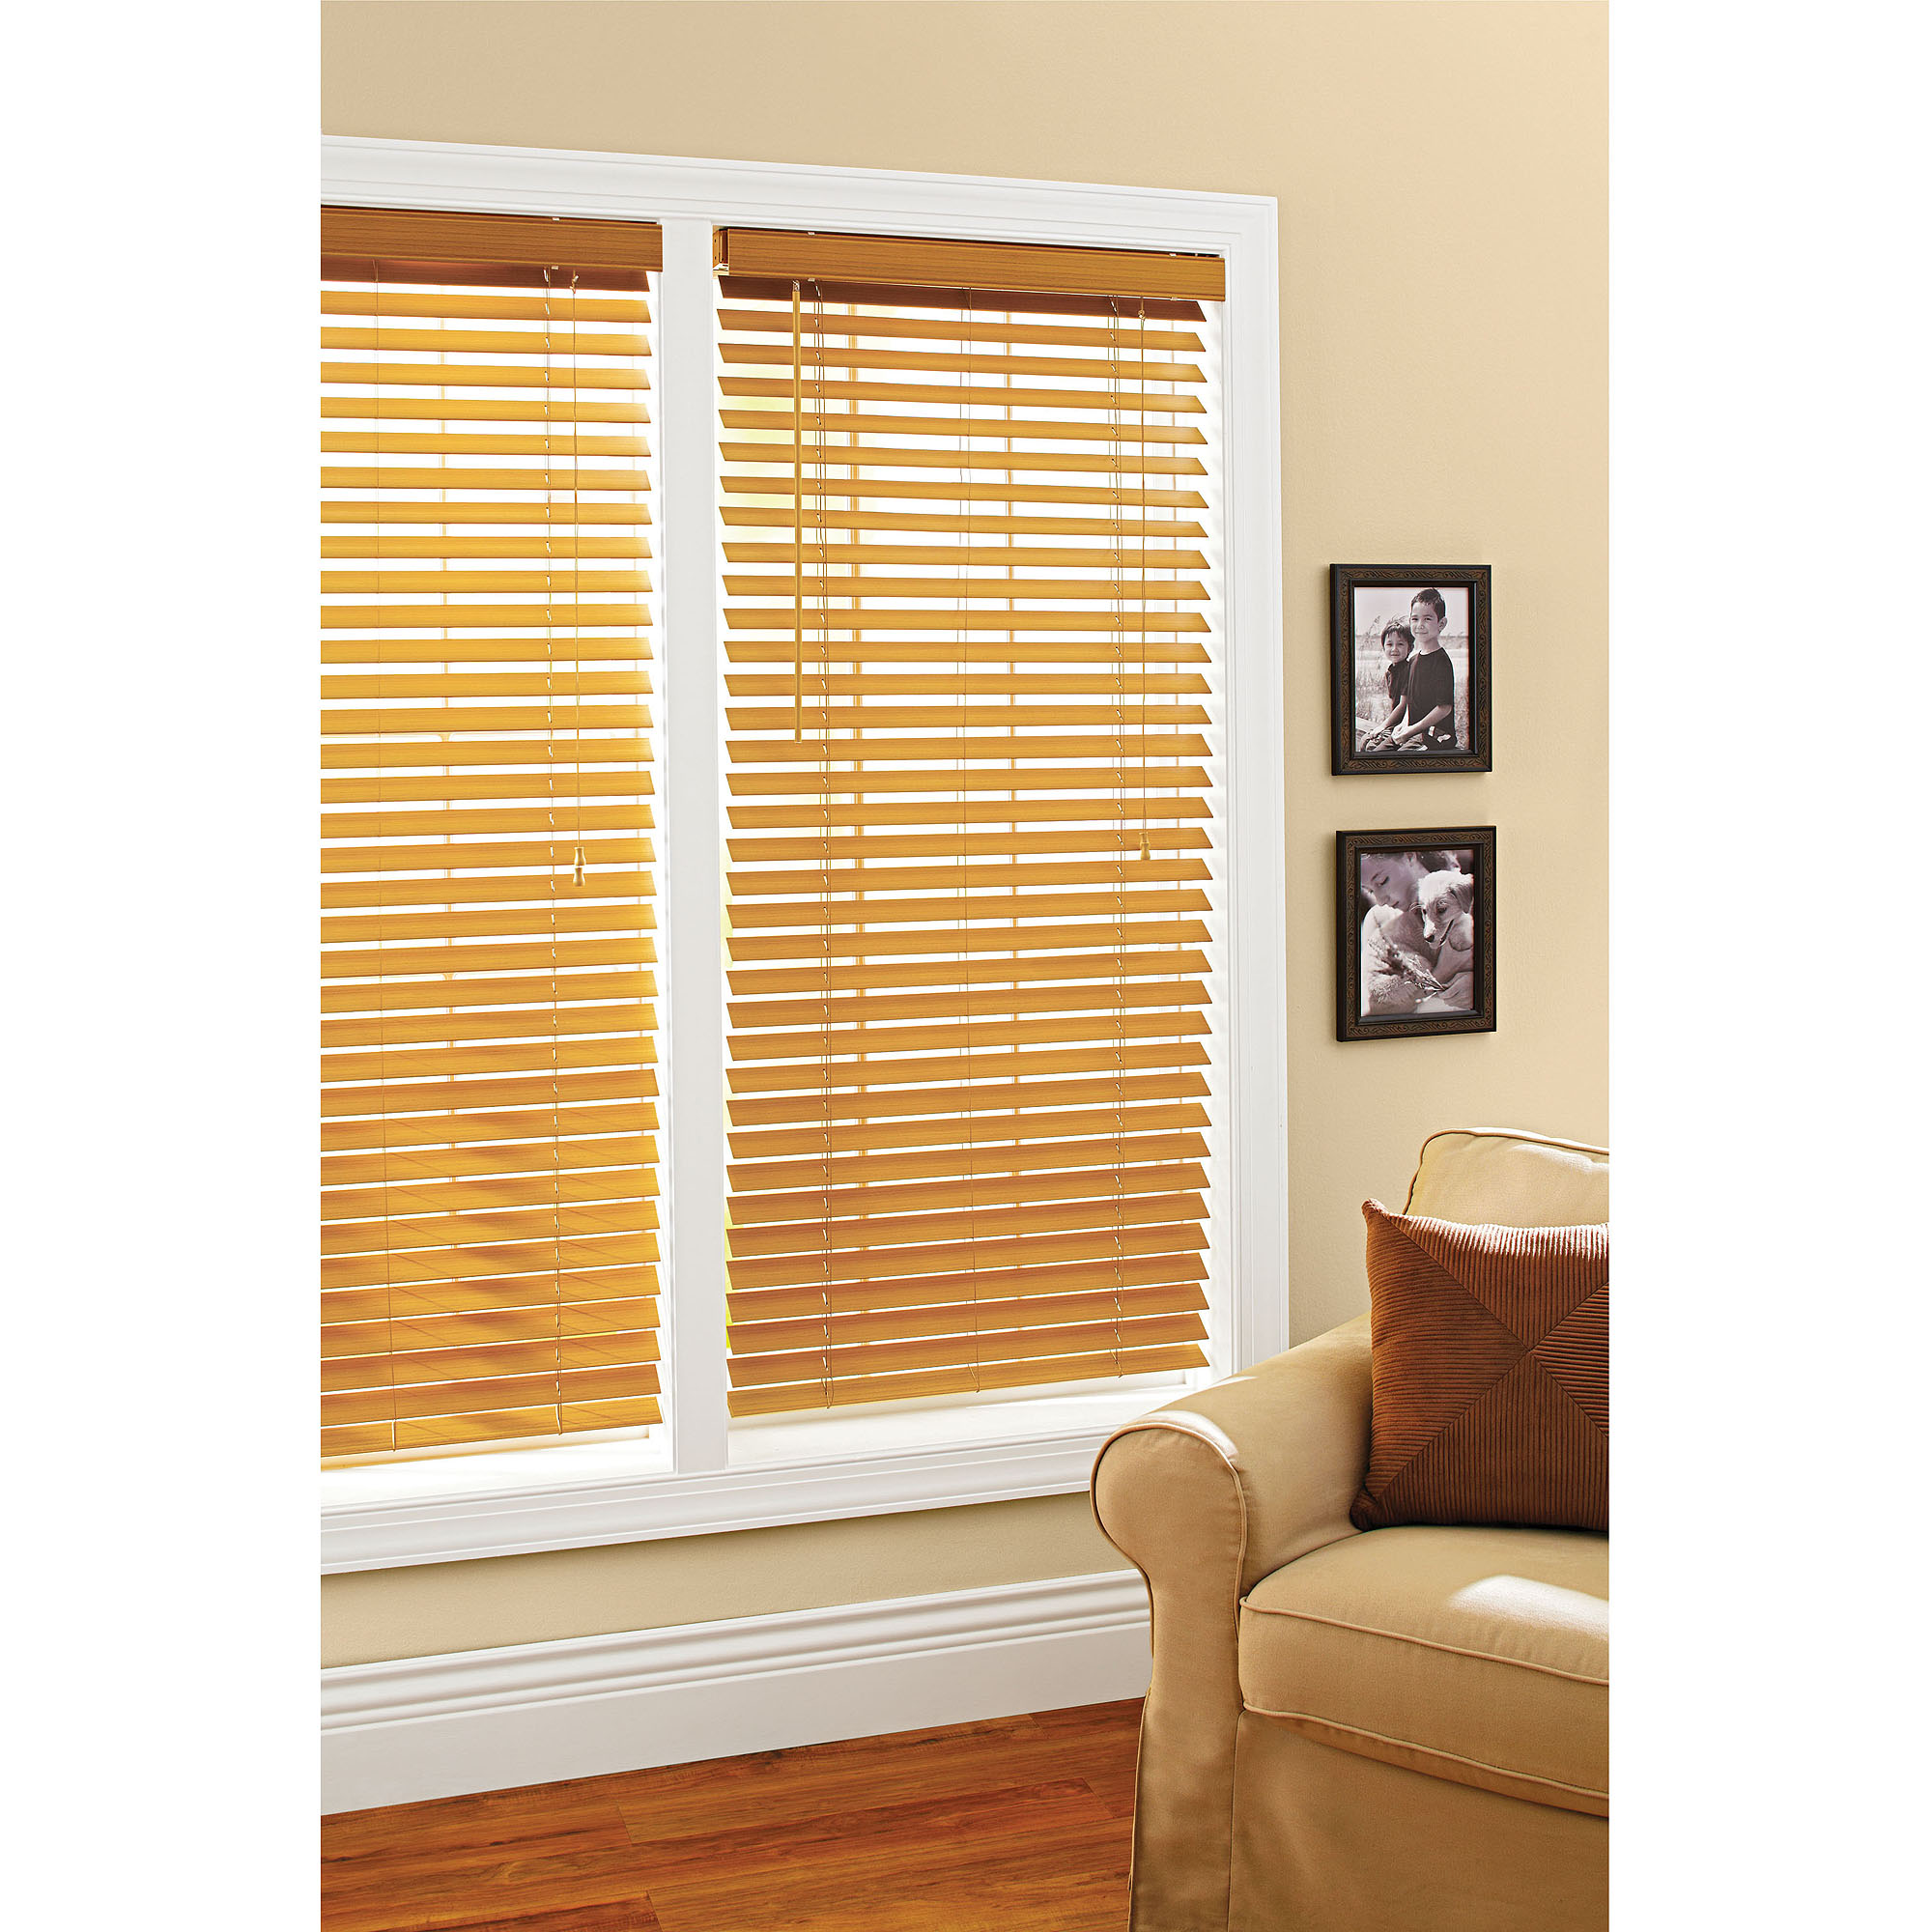 "Better Homes and Gardens 2"" Faux Wood Windows Blinds, Oak"